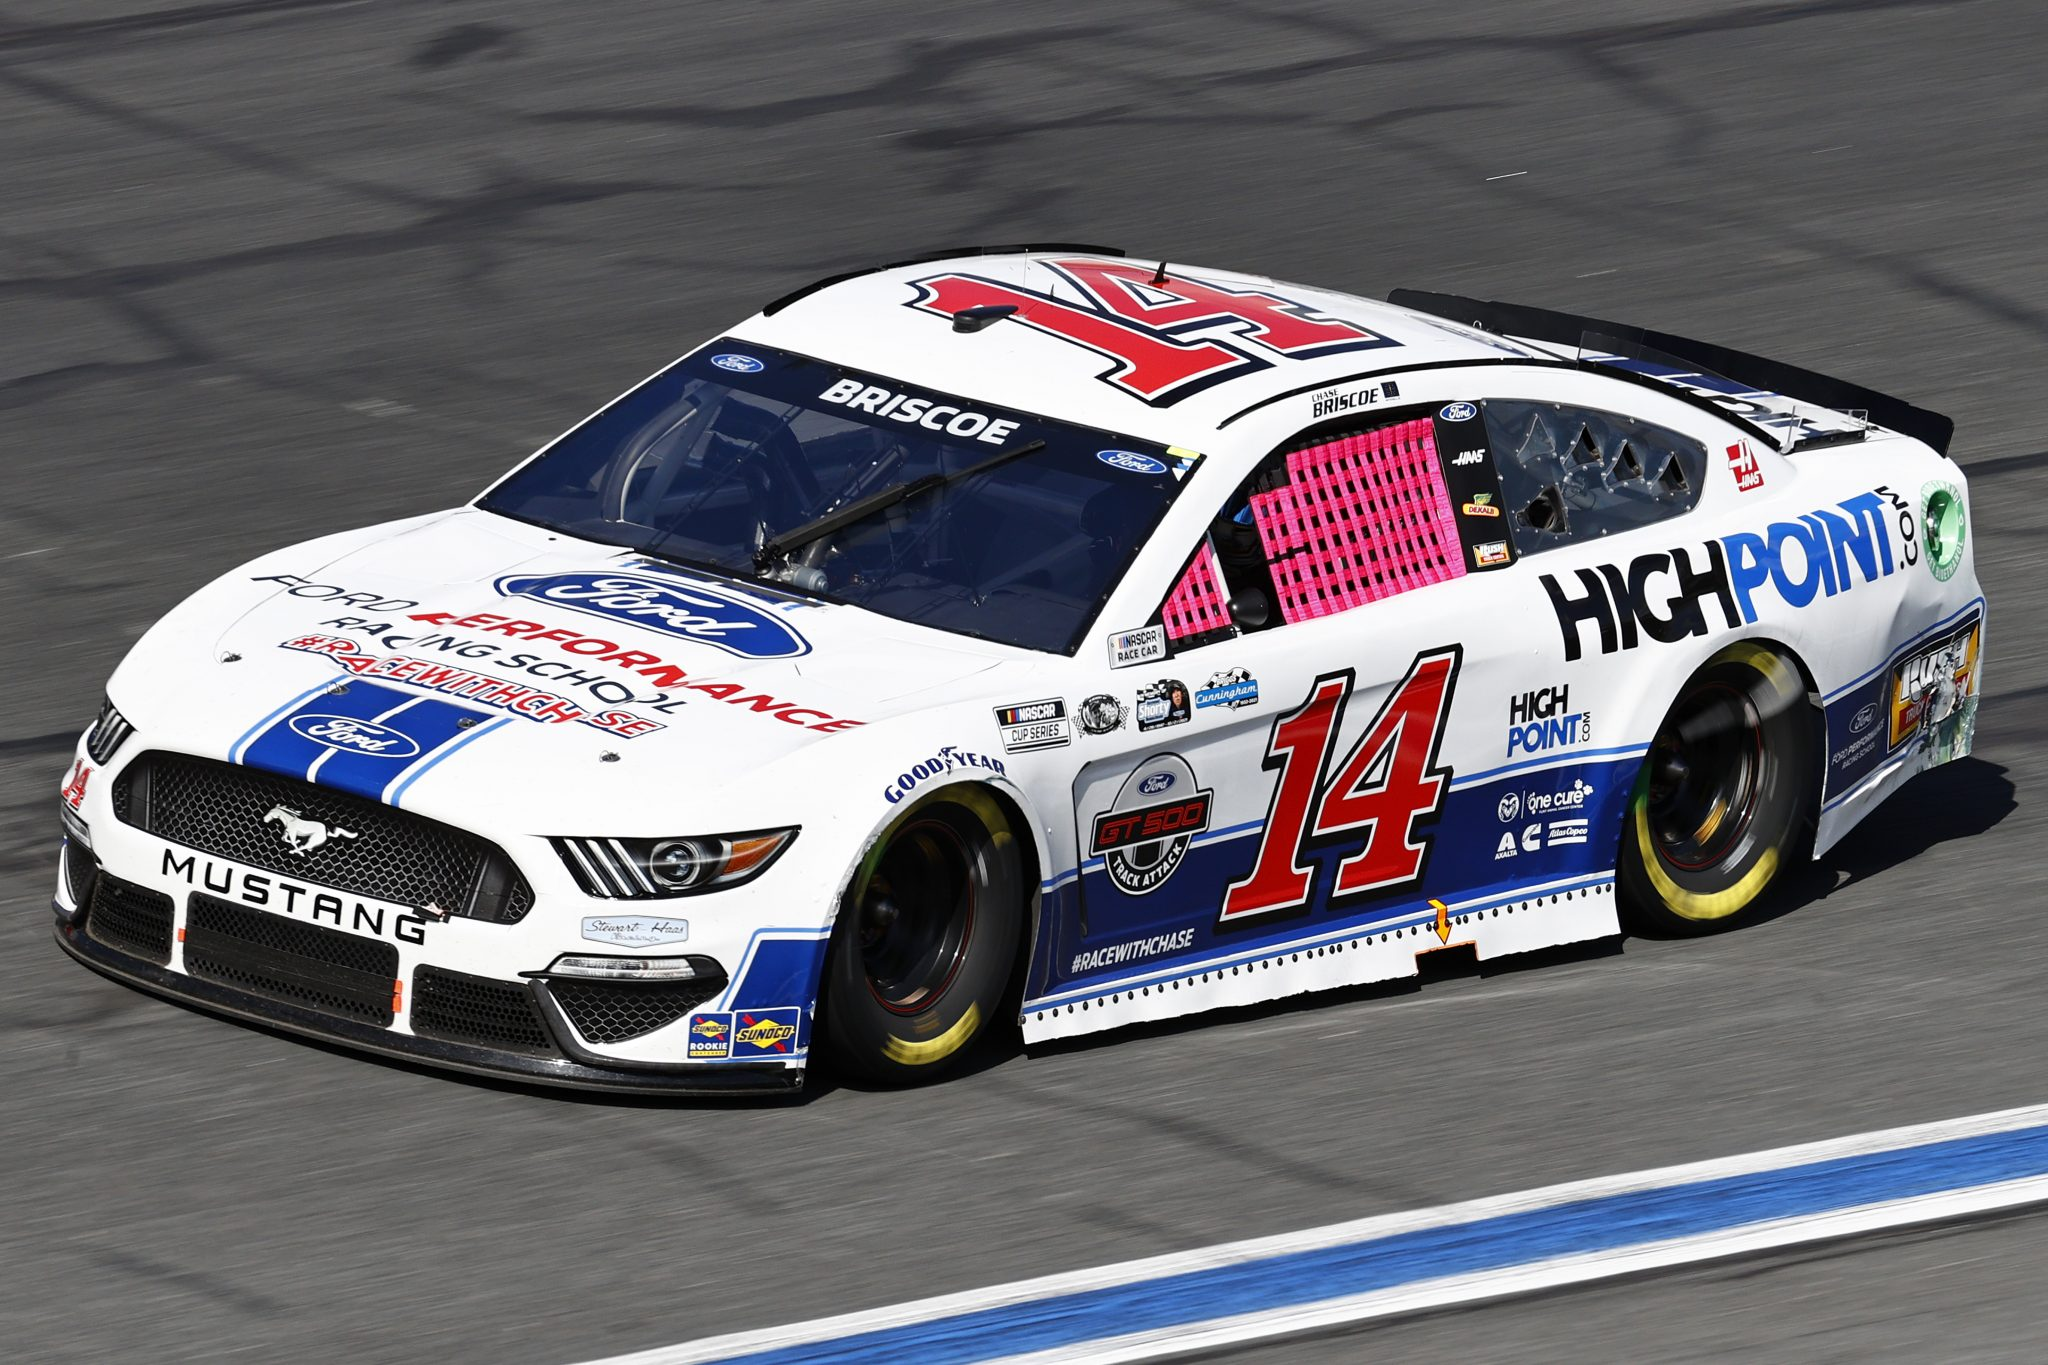 CONCORD, NORTH CAROLINA - OCTOBER 10: Chase Briscoe, driver of the #14 FordPerformanceRacingSchool/HighPoint Ford, drives during the NASCAR Cup Series Bank of America ROVAL 400 at Charlotte Motor Speedway on October 10, 2021 in Concord, North Carolina. (Photo by Jared C. Tilton/Getty Images) | Getty Images